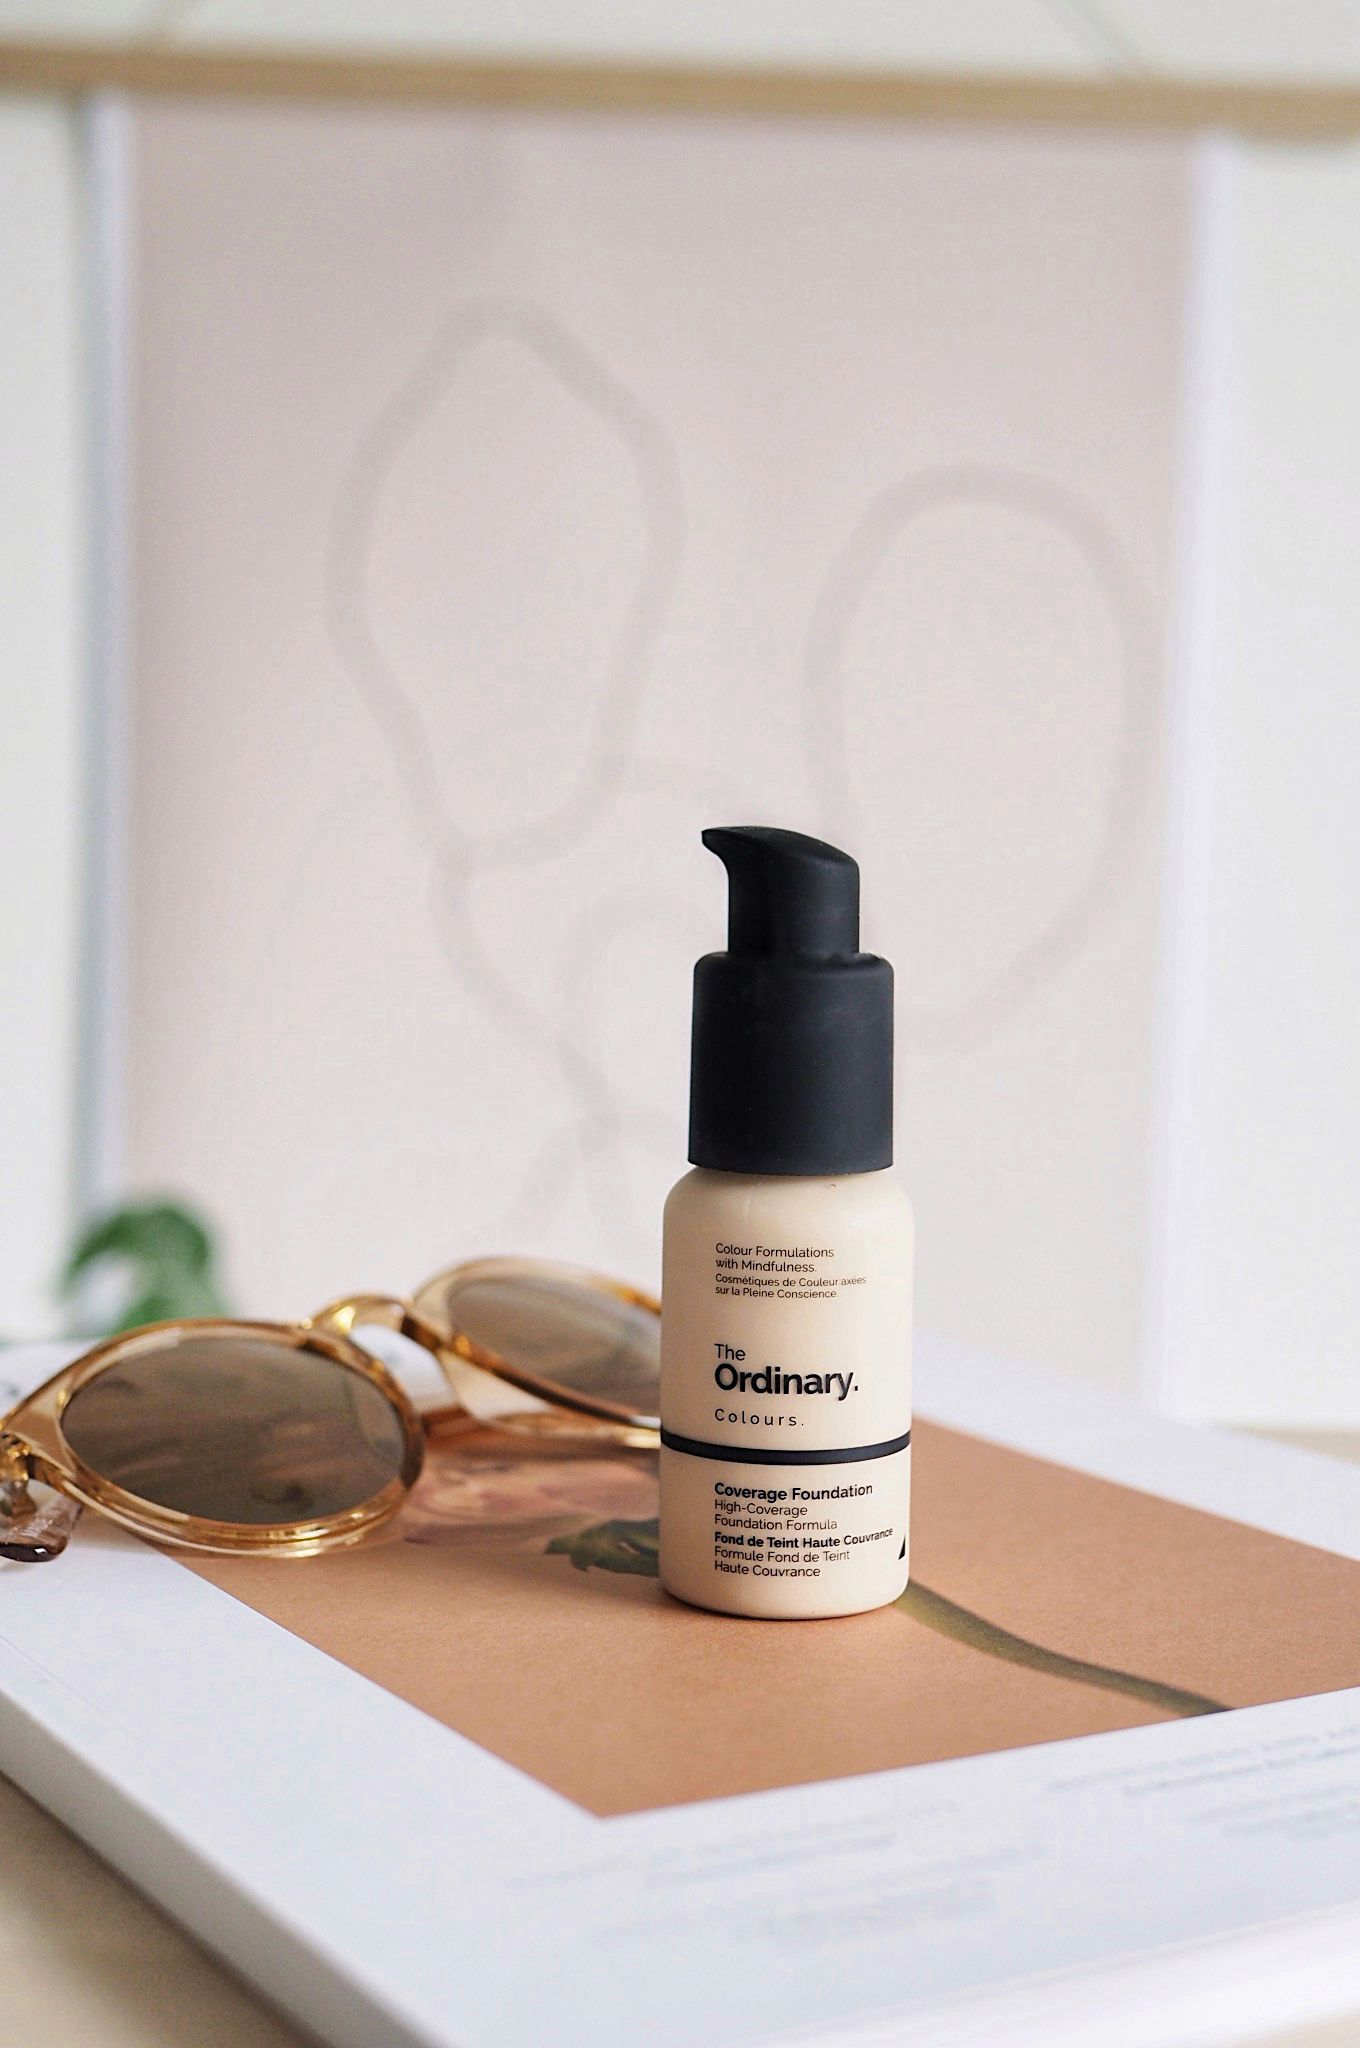 The Most Hyped Foundation Ever Makeup foundation